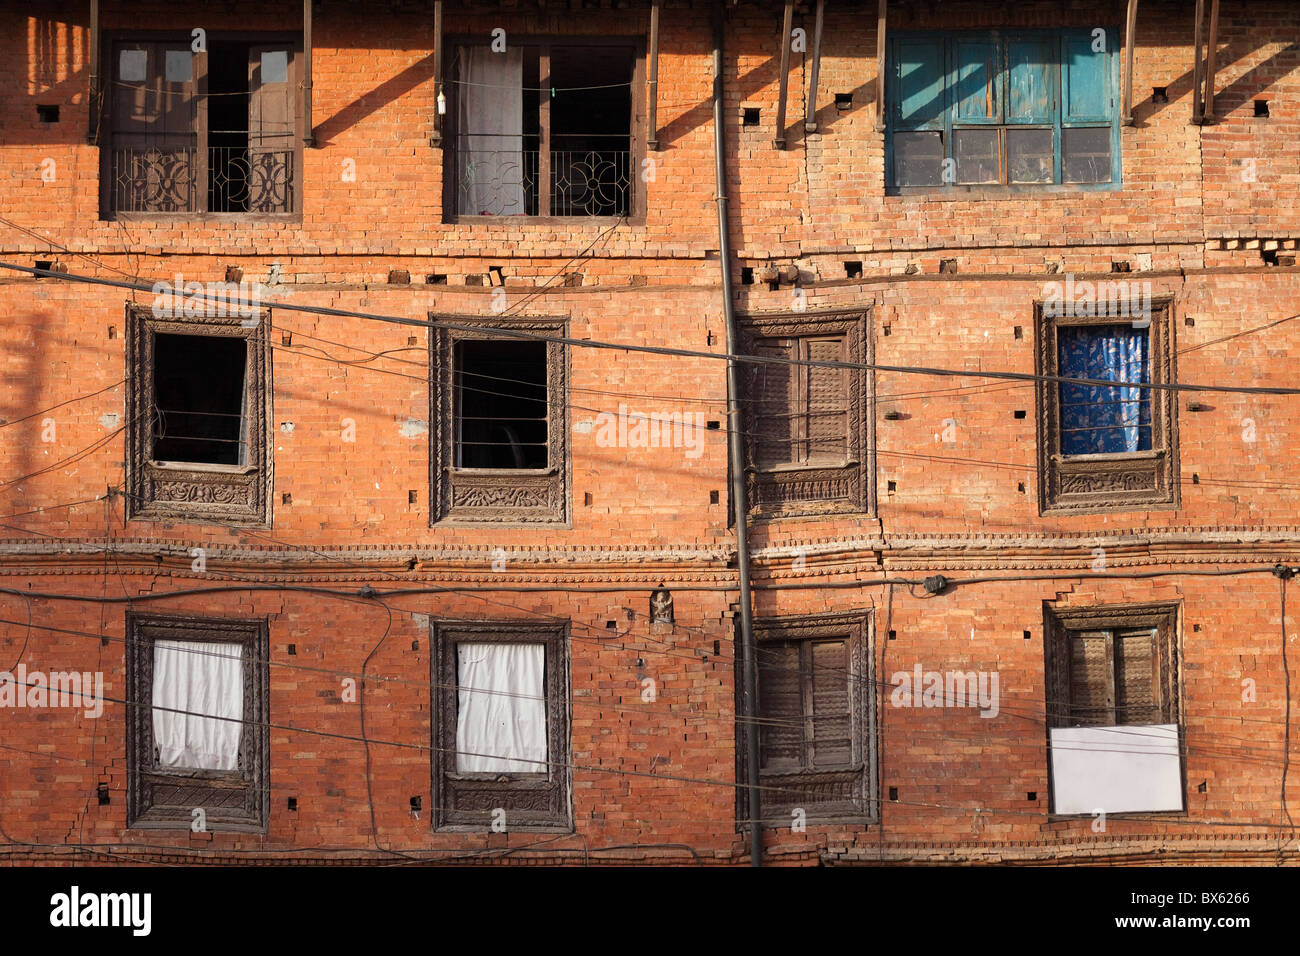 ancient building crooked facade in Bhaktapur, Nepal - Stock Image